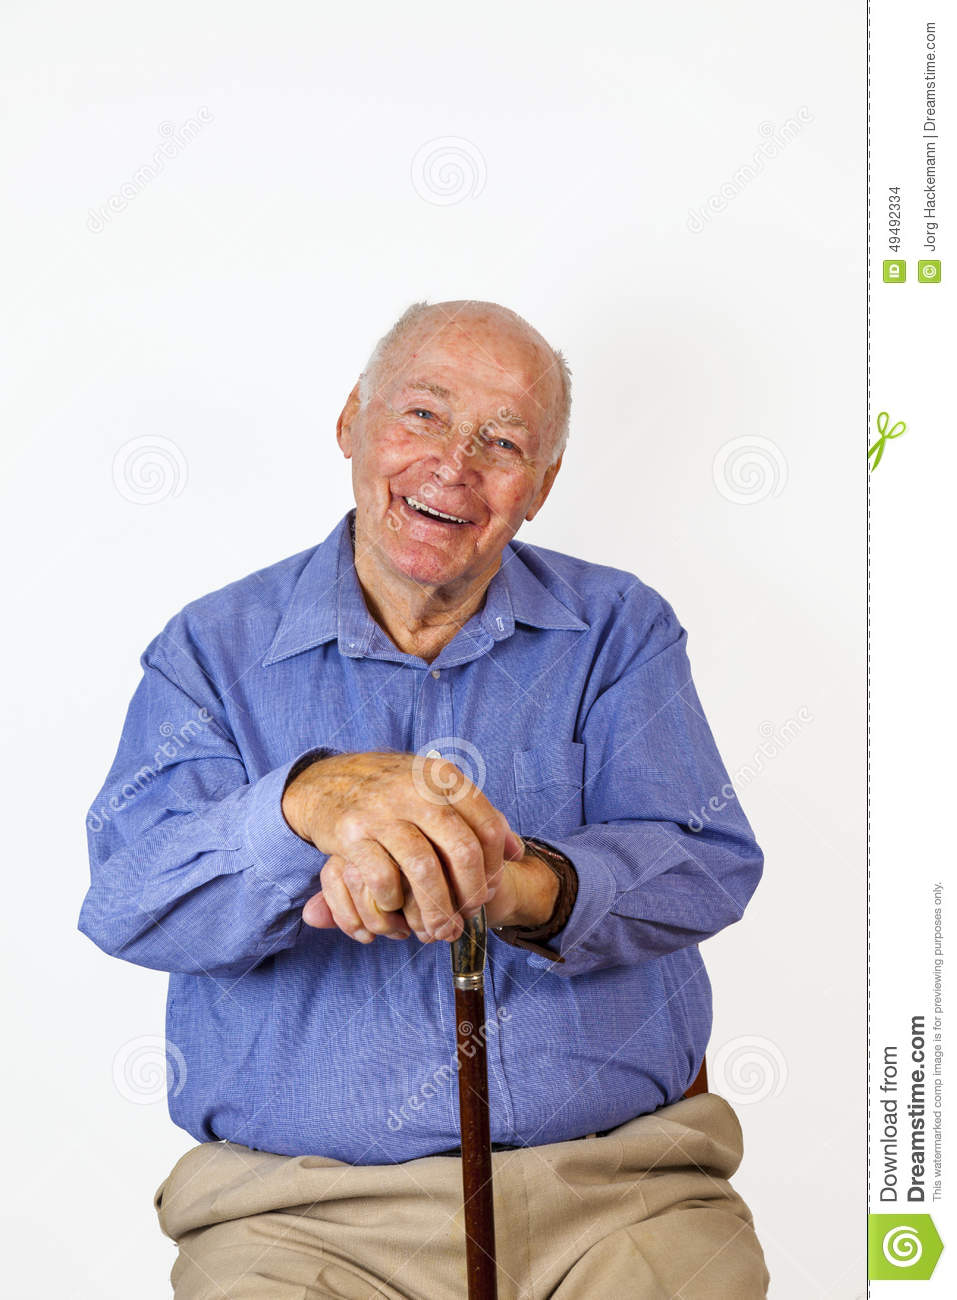 chair design for elderly best office cushion happy man sitting in a stock photo - image: 49492334